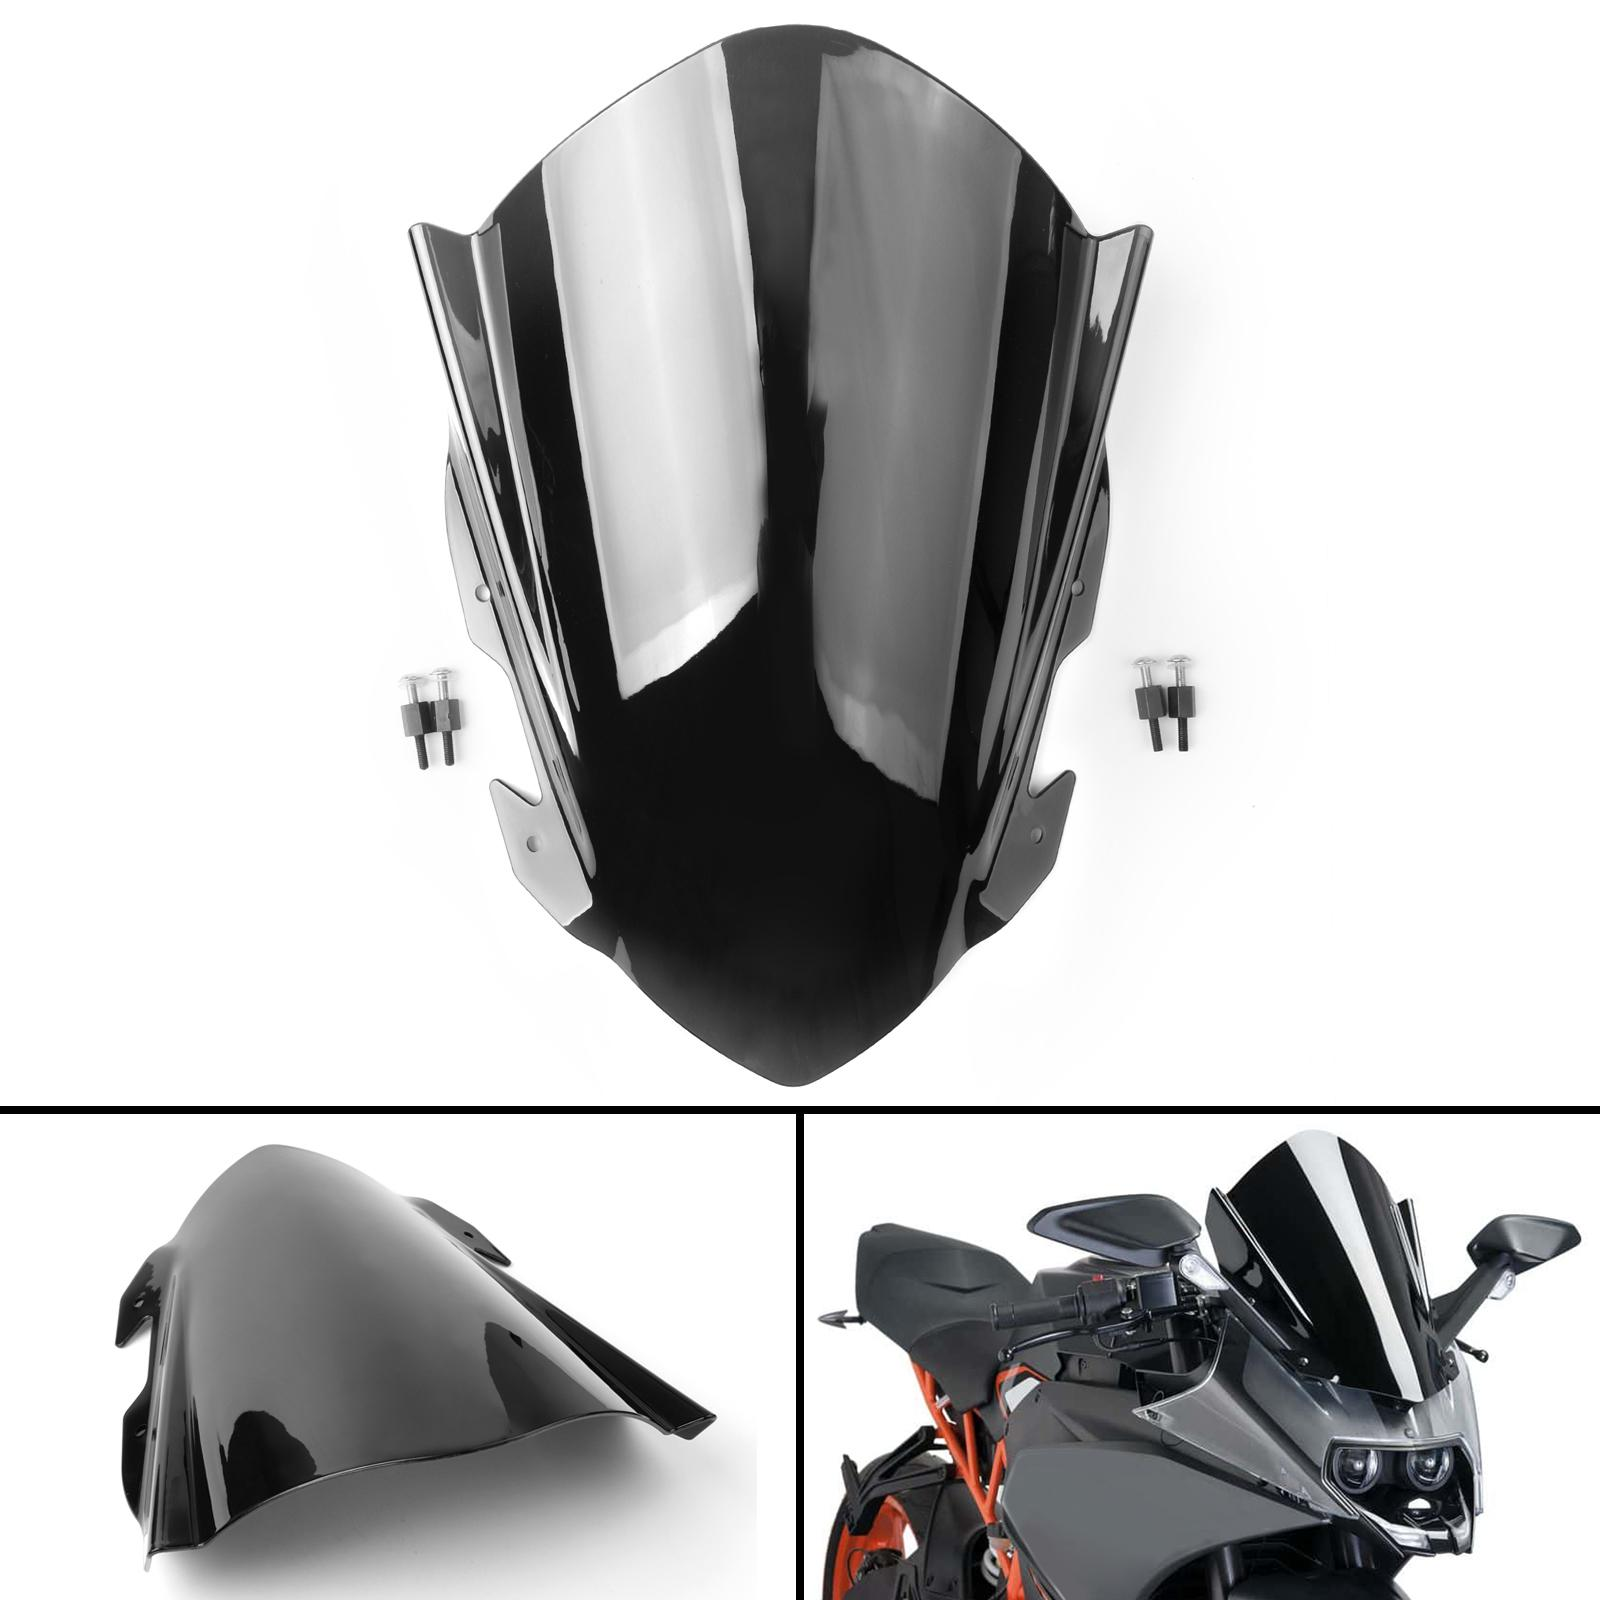 Areyourshop Windshield Windscreen Double Bubble For YZF R1 1998-1999 CLE-BLK